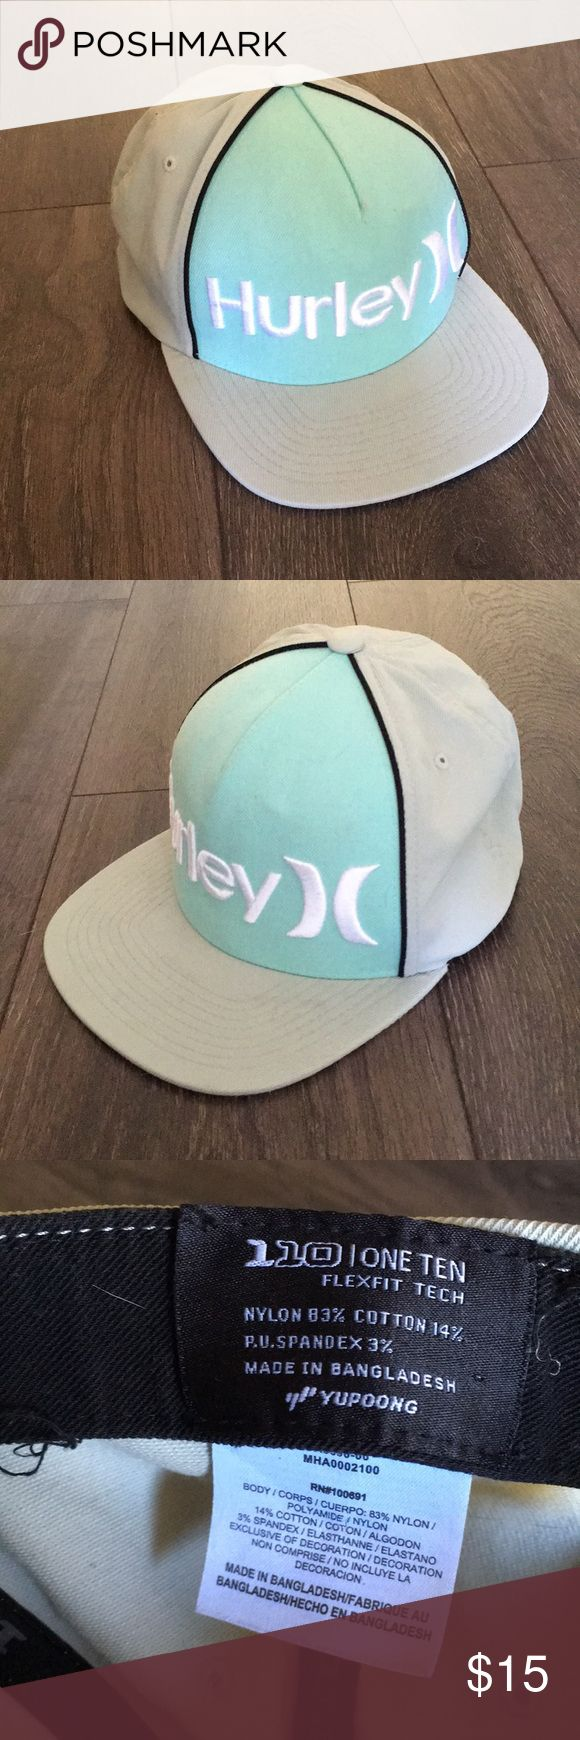 Youth Hurley hat Kids' flat bill Hurley hat size small. Aqua blue, tannish gray and white. Adjustable. Great condition and no flaws. Hurley Accessories Hats